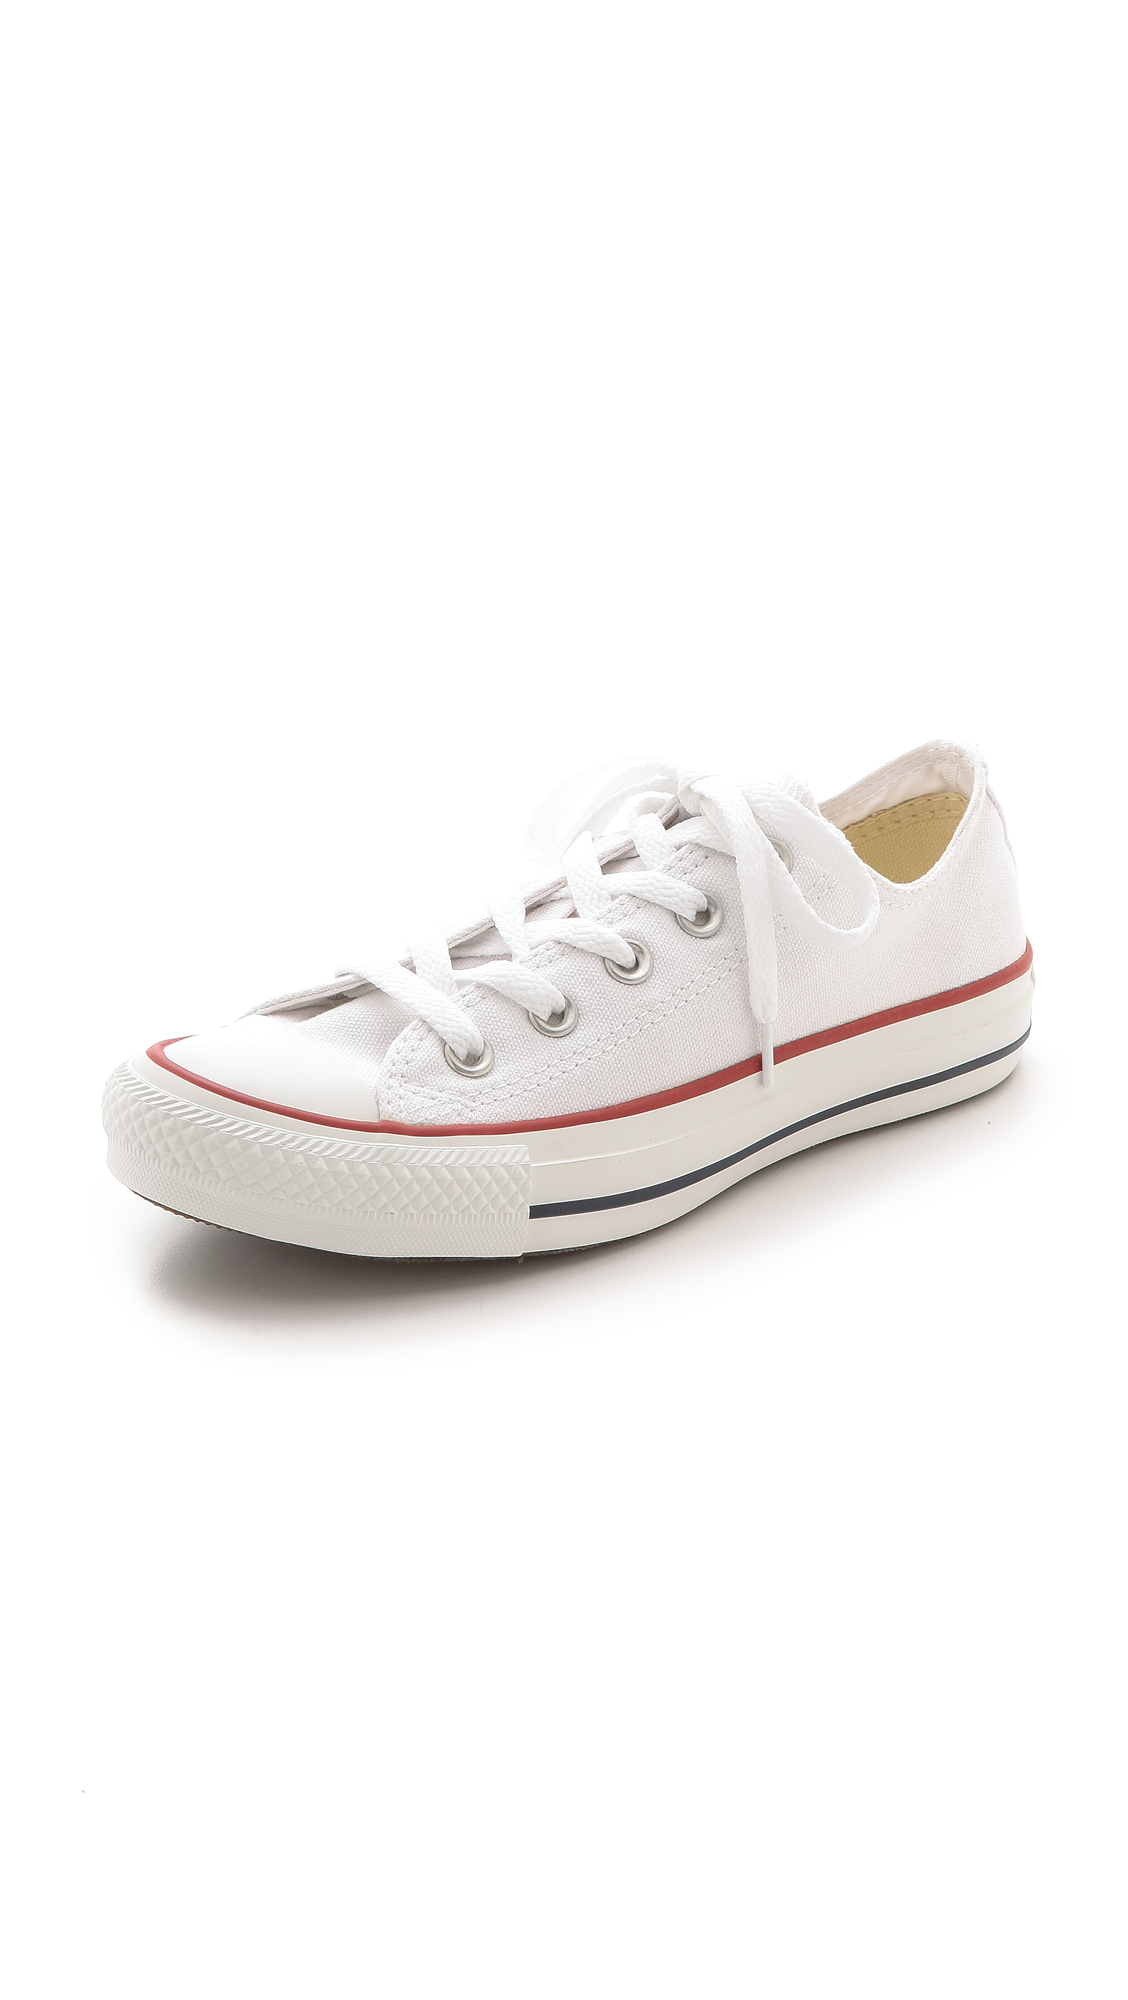 Unisex Chuck Taylor All Star Ox Casual Sneakers From Finish Line in 102 Optical White from MR PORTER